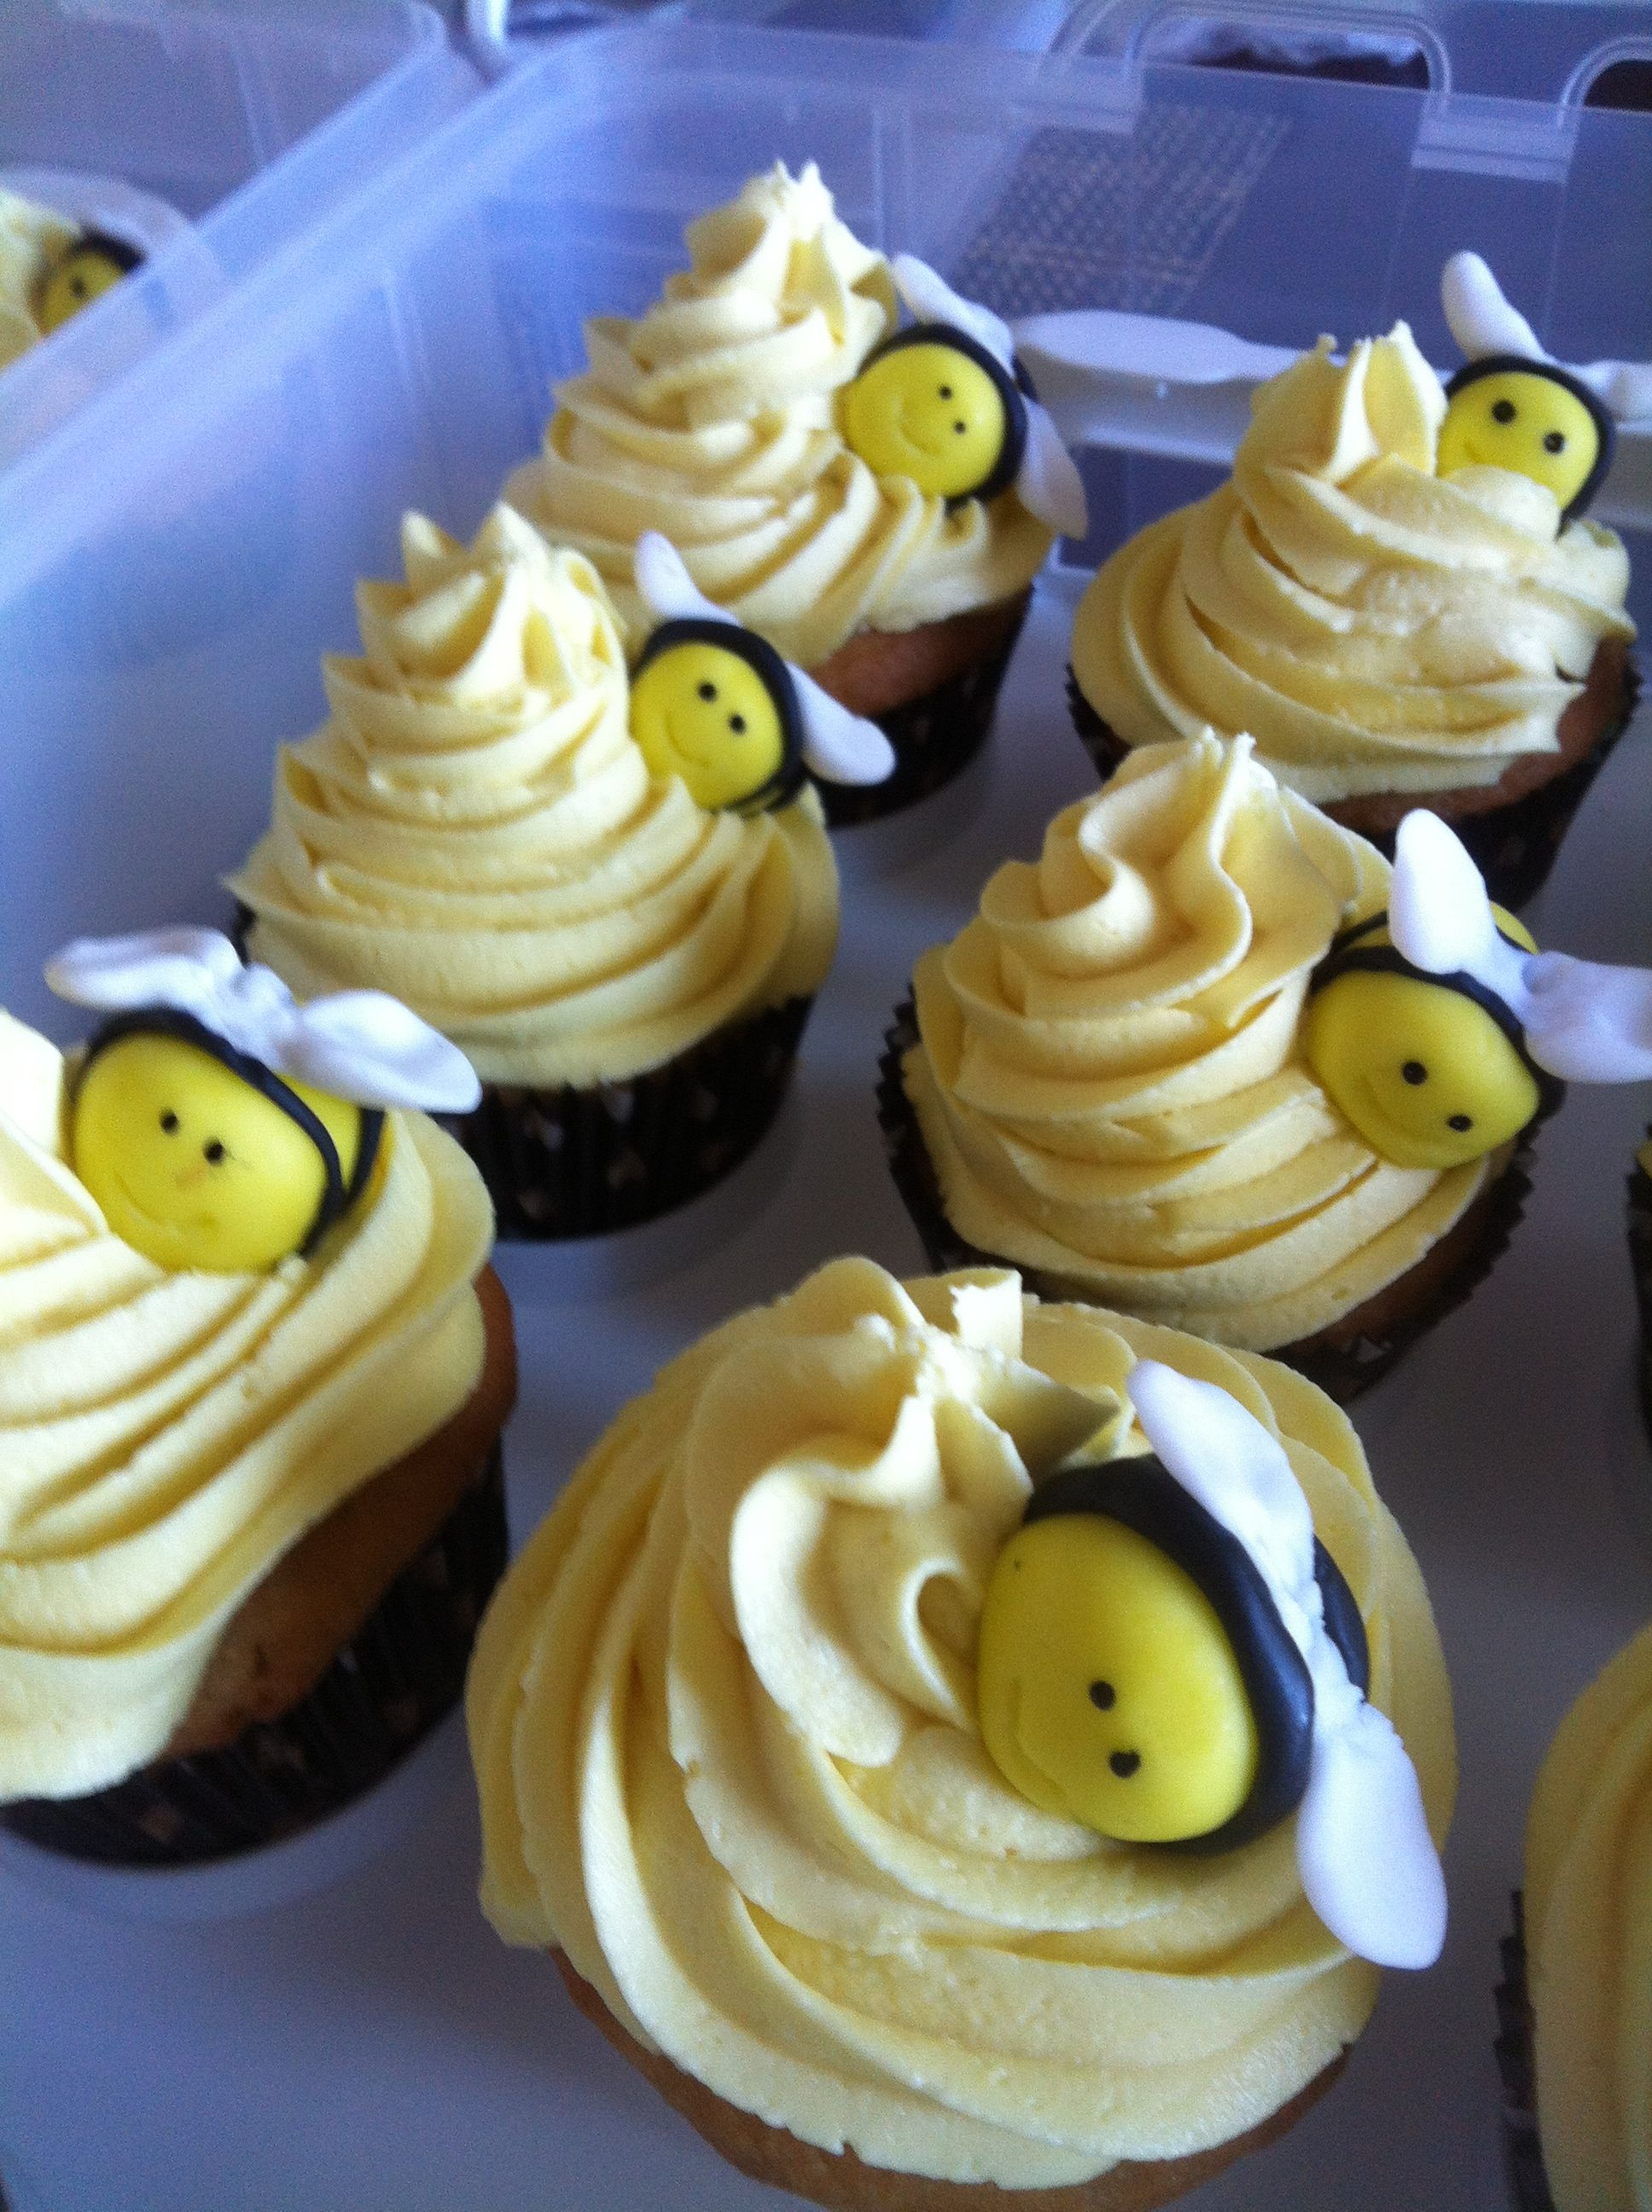 19+ Baby cakes cupcakes san diego ideas in 2021